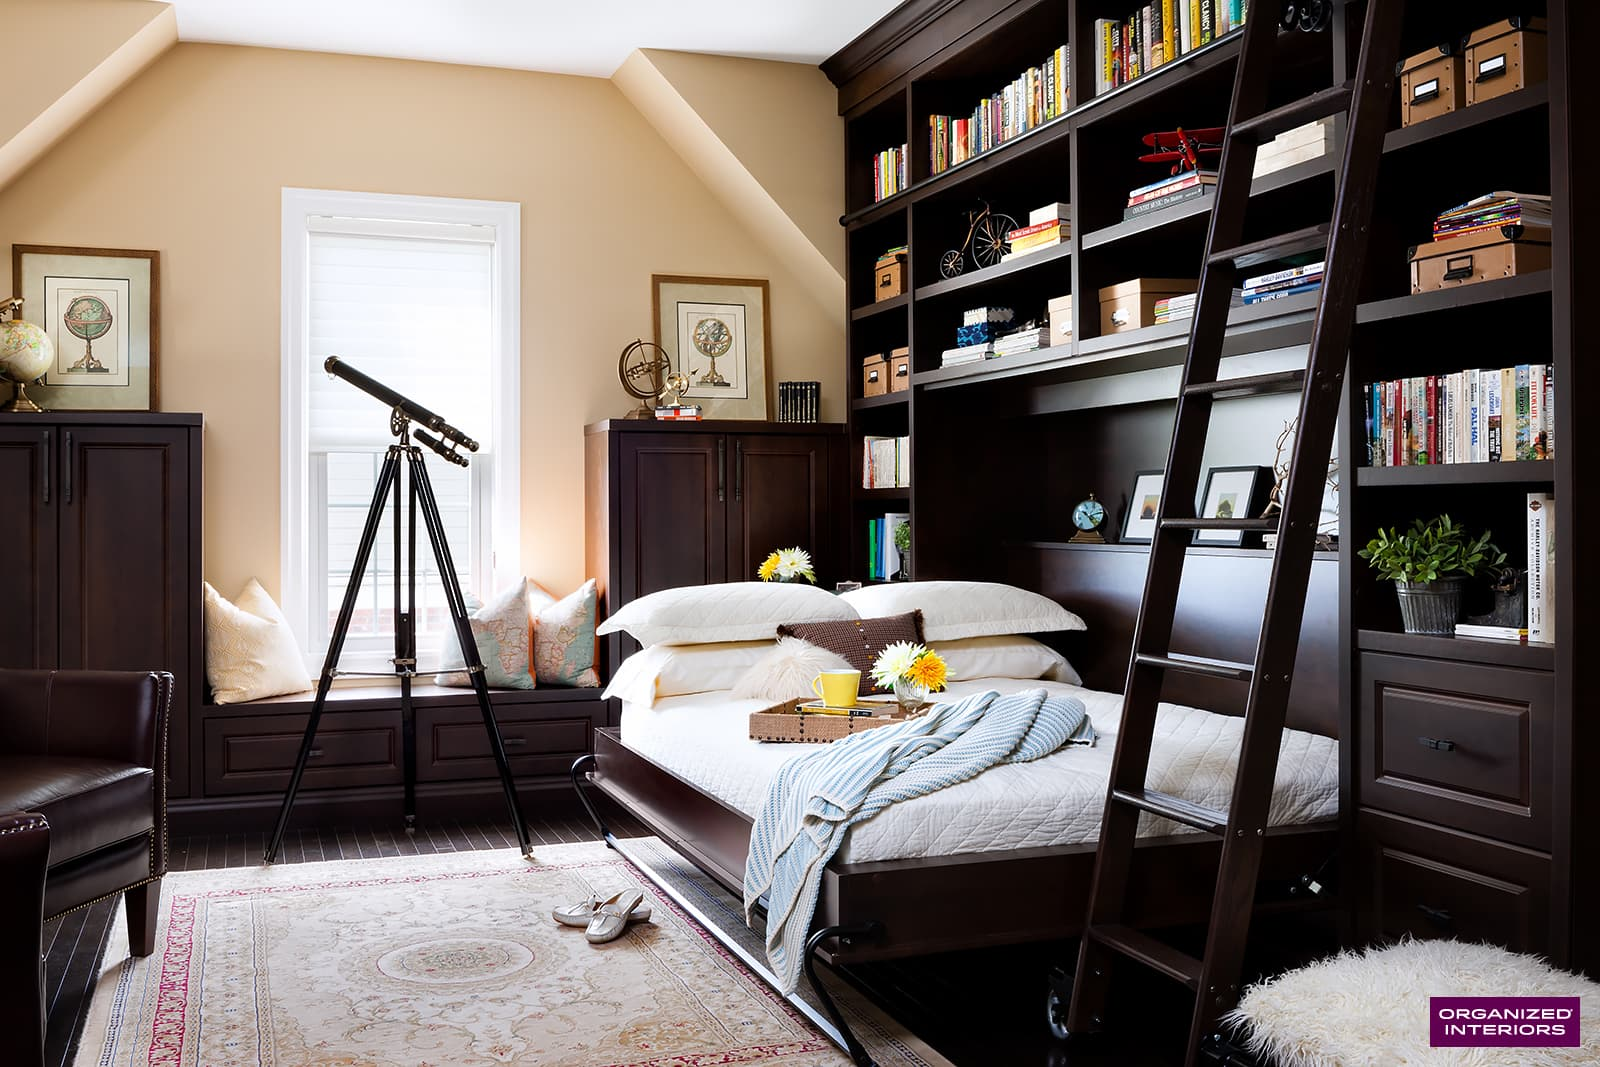 Murphy Bed Ideas A Classic That Never Goes Out Of Style